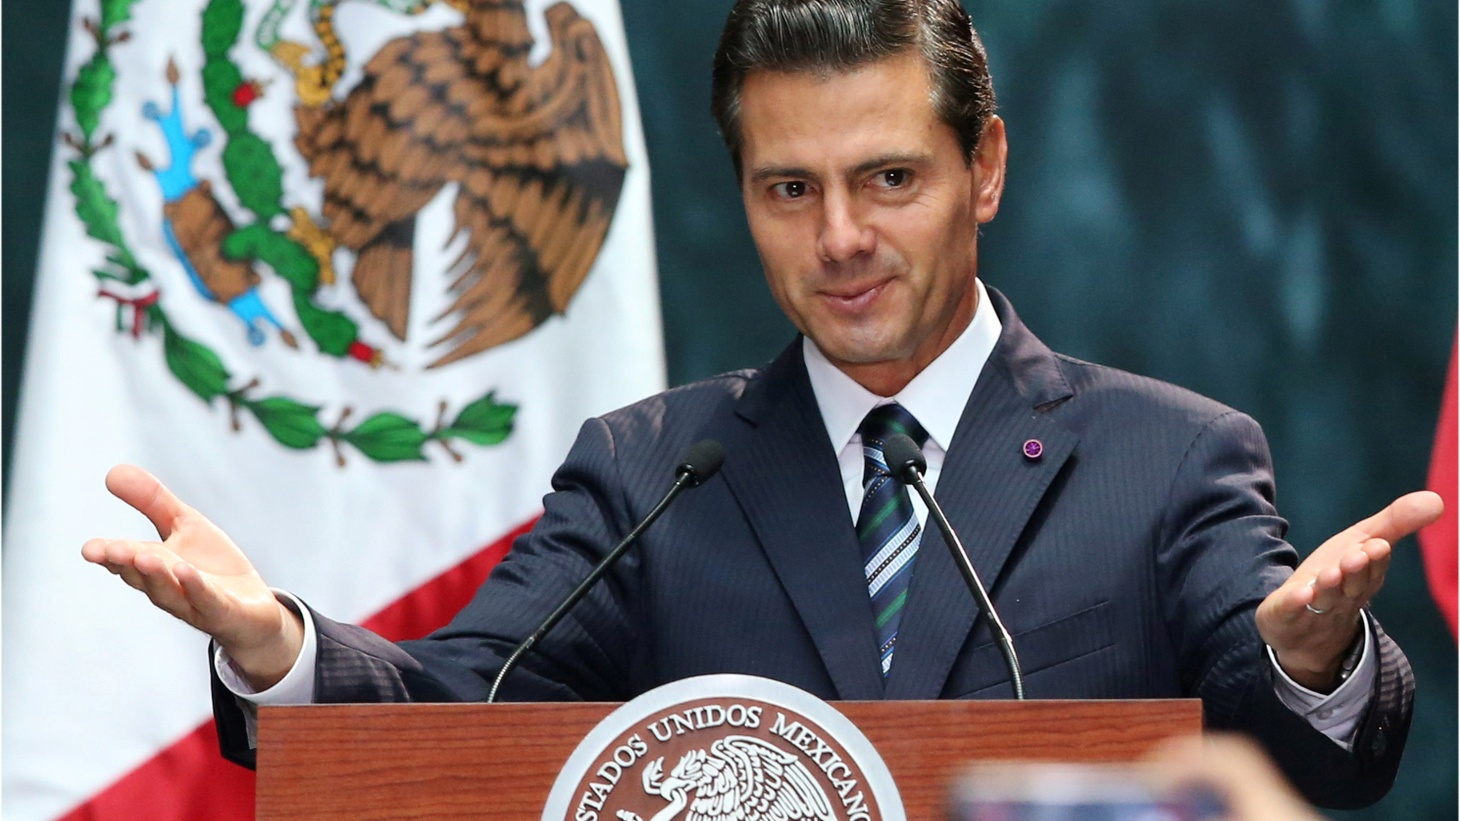 A transcript of a phone call between President Trump and his Mexican counterpart Enrique Pena Nieto is getting attention today. Trump says the border wall is not the top issue between the two countries. And he asked Pena Nieto to stop saying publically that Mexico wouldn't pay for the border wall.